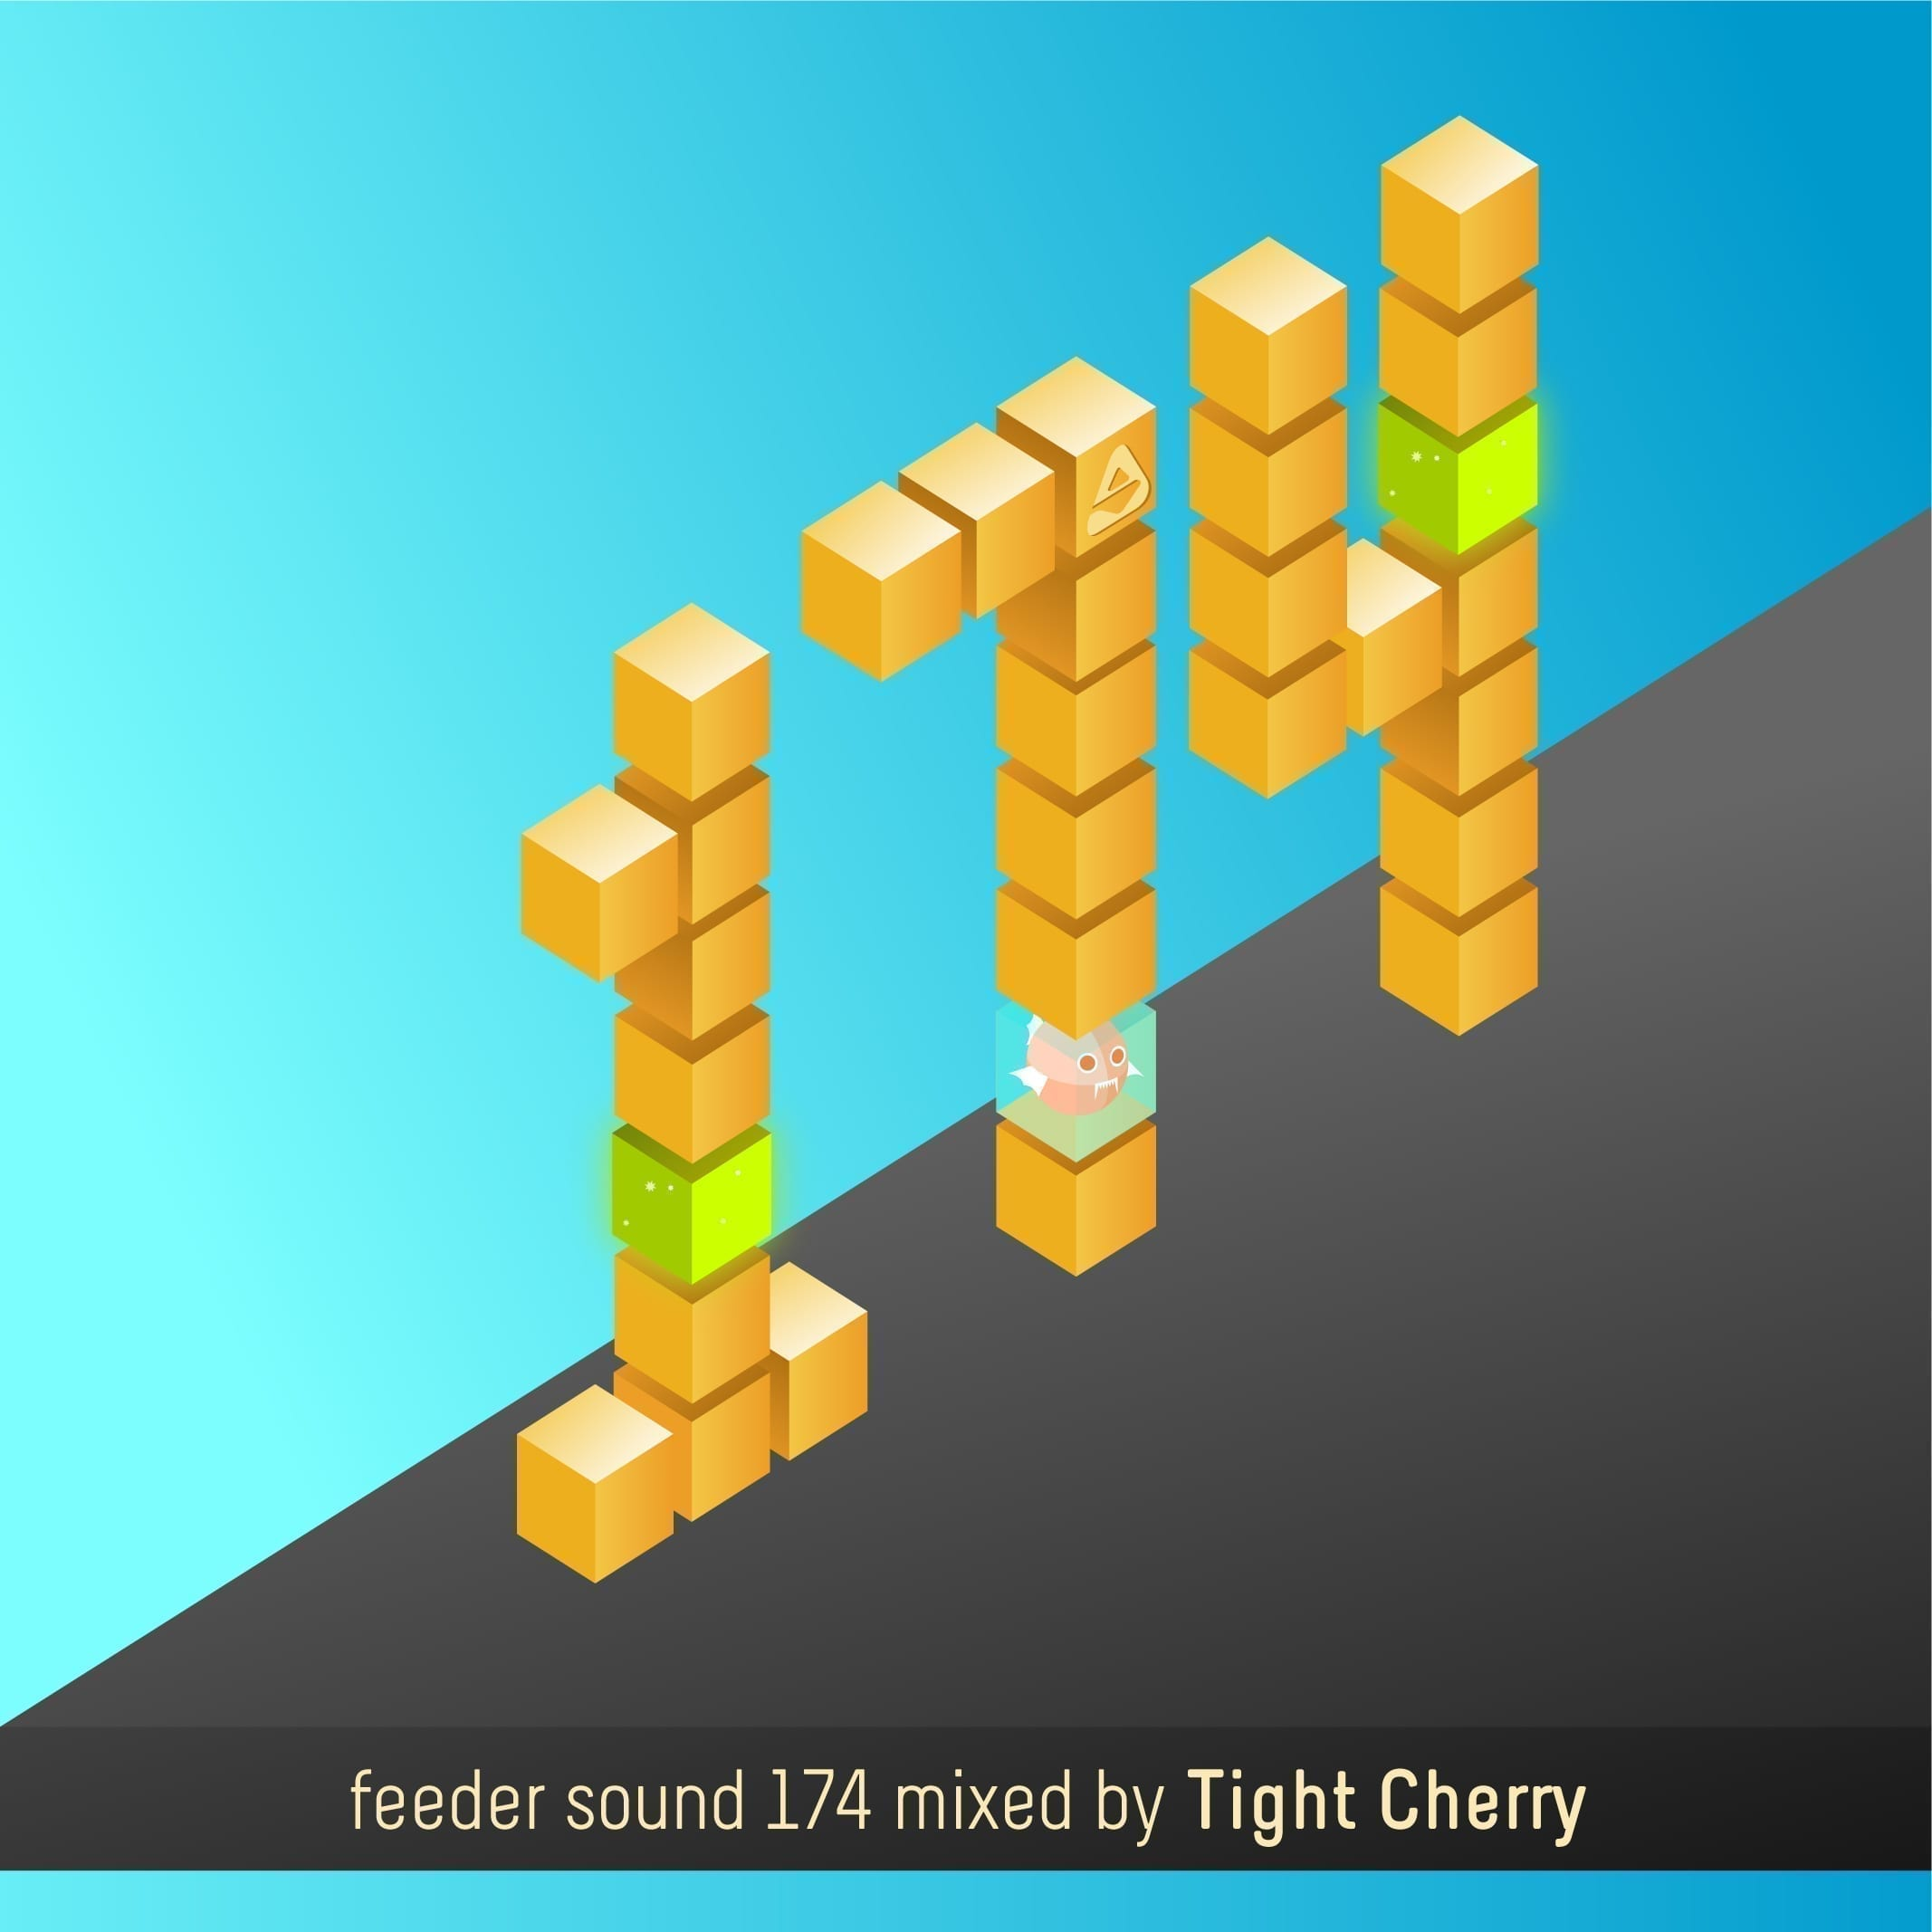 feeder sound 174 mixed by Tight Cherry